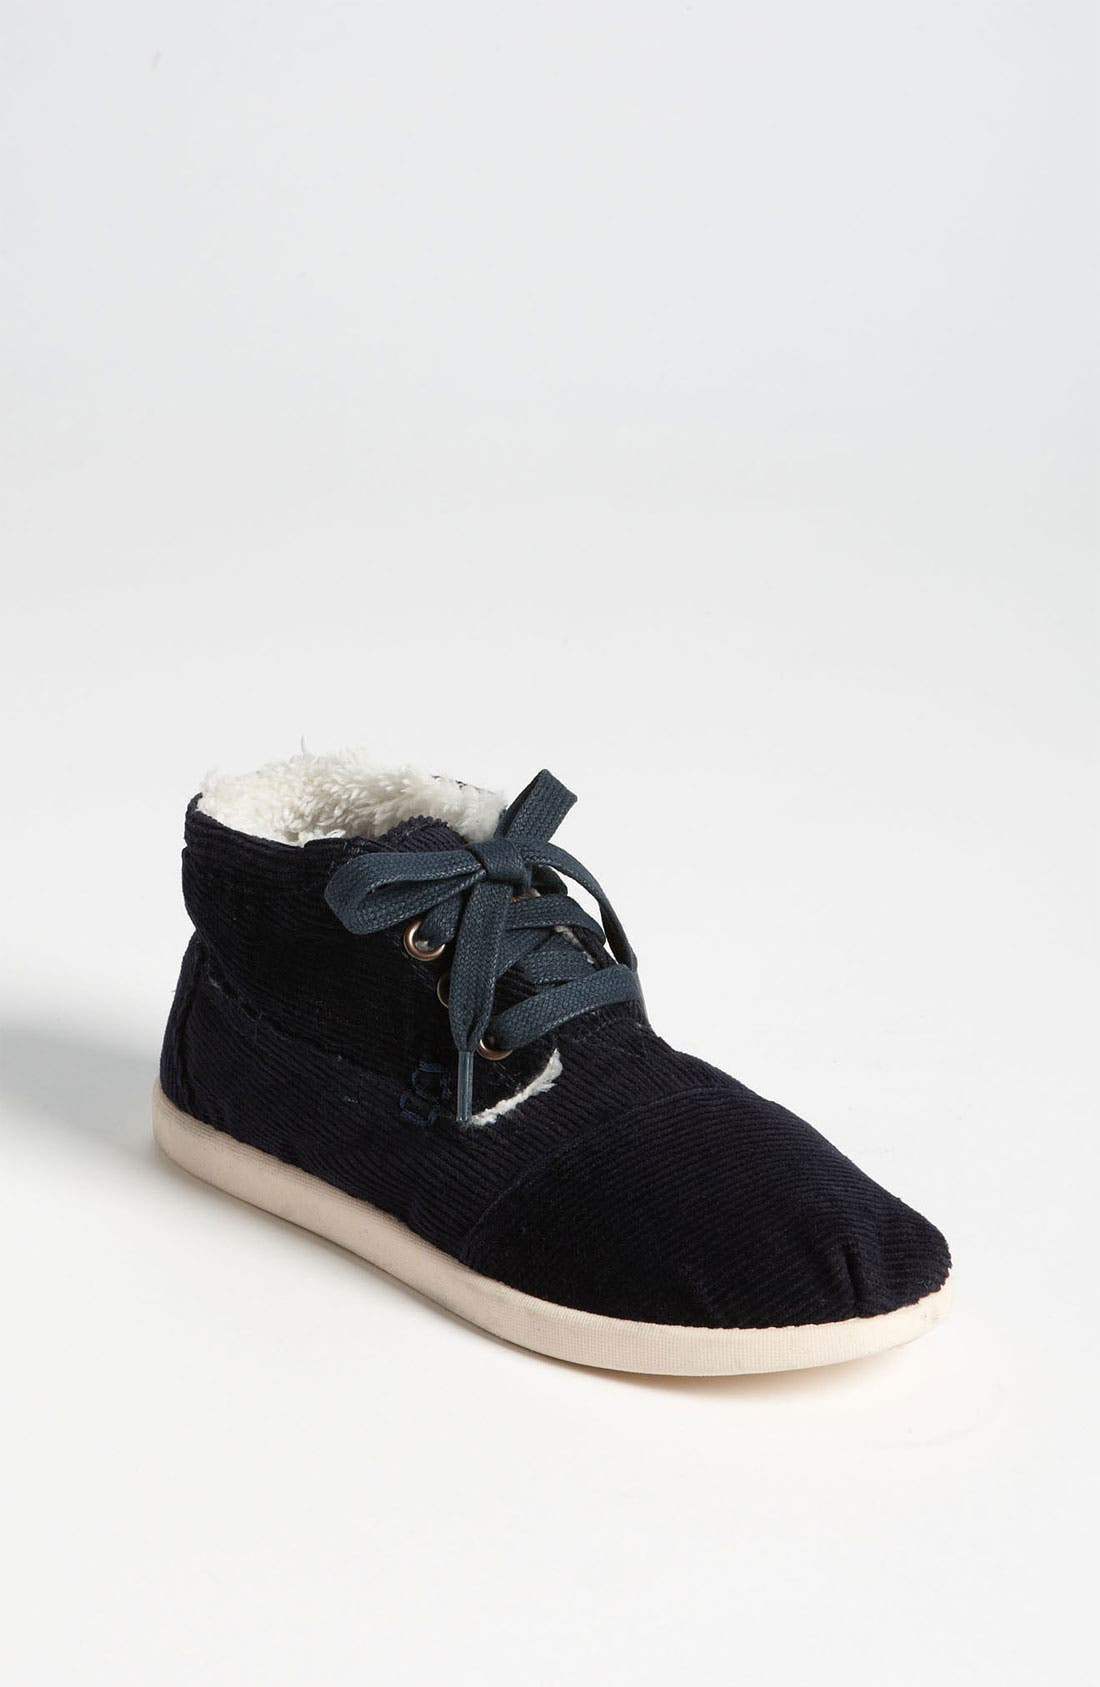 Main Image - TOMS 'Botas - Youth' Corduroy Boot (Toddler, Little Kid & Big Kid)